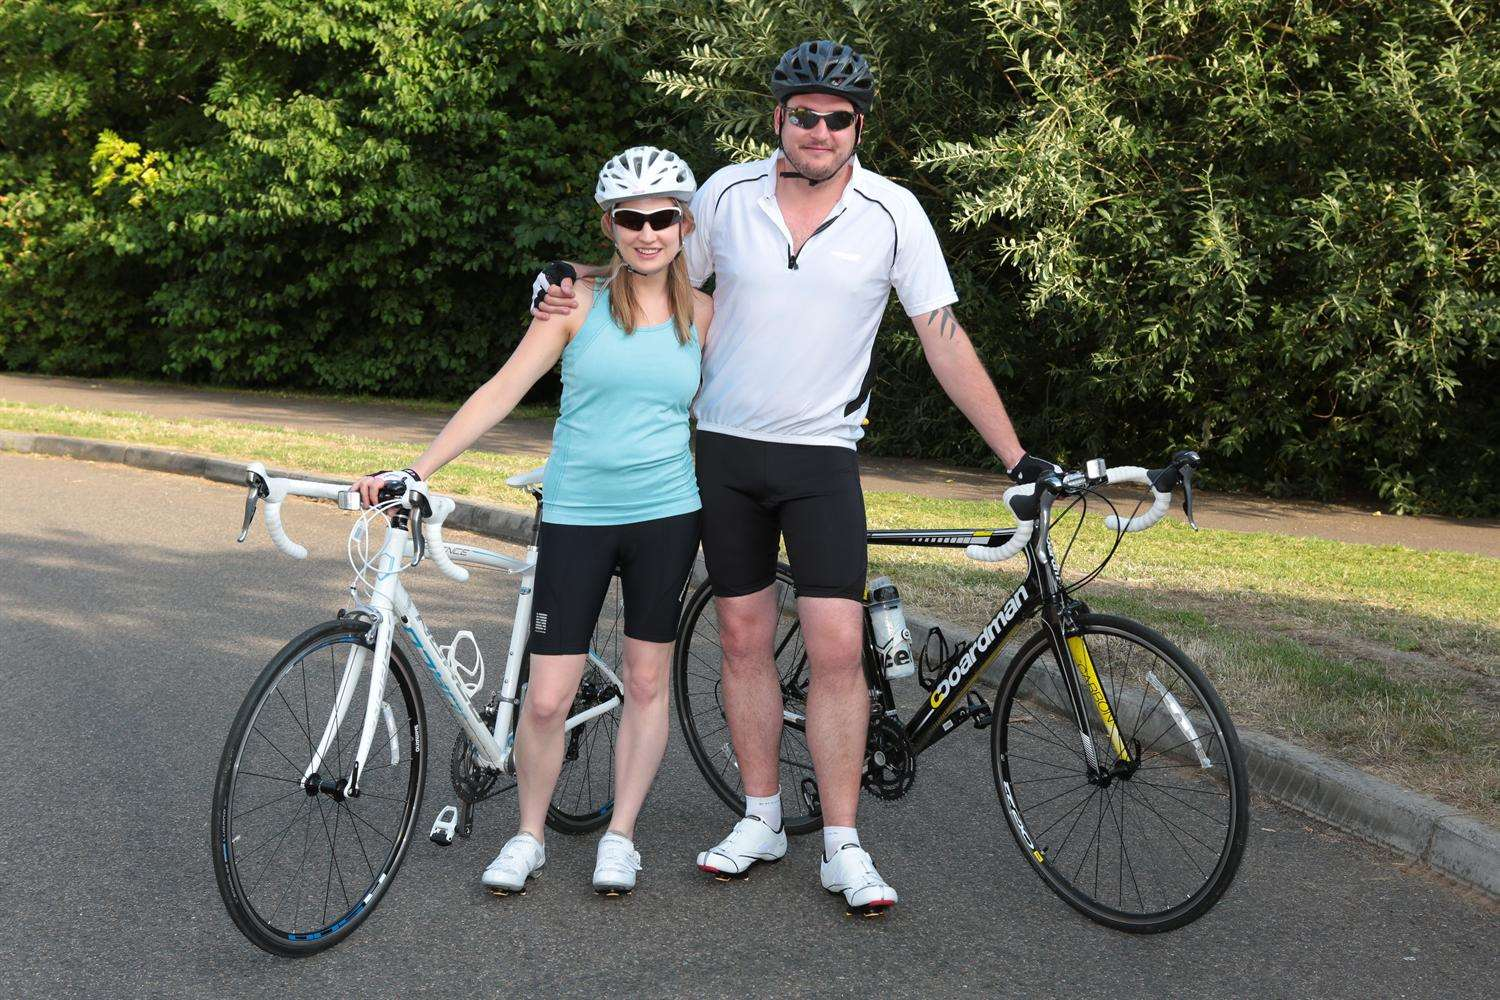 Ellen Huelin and husband Kirk ahead of their charity bike ride in tribute to her dad